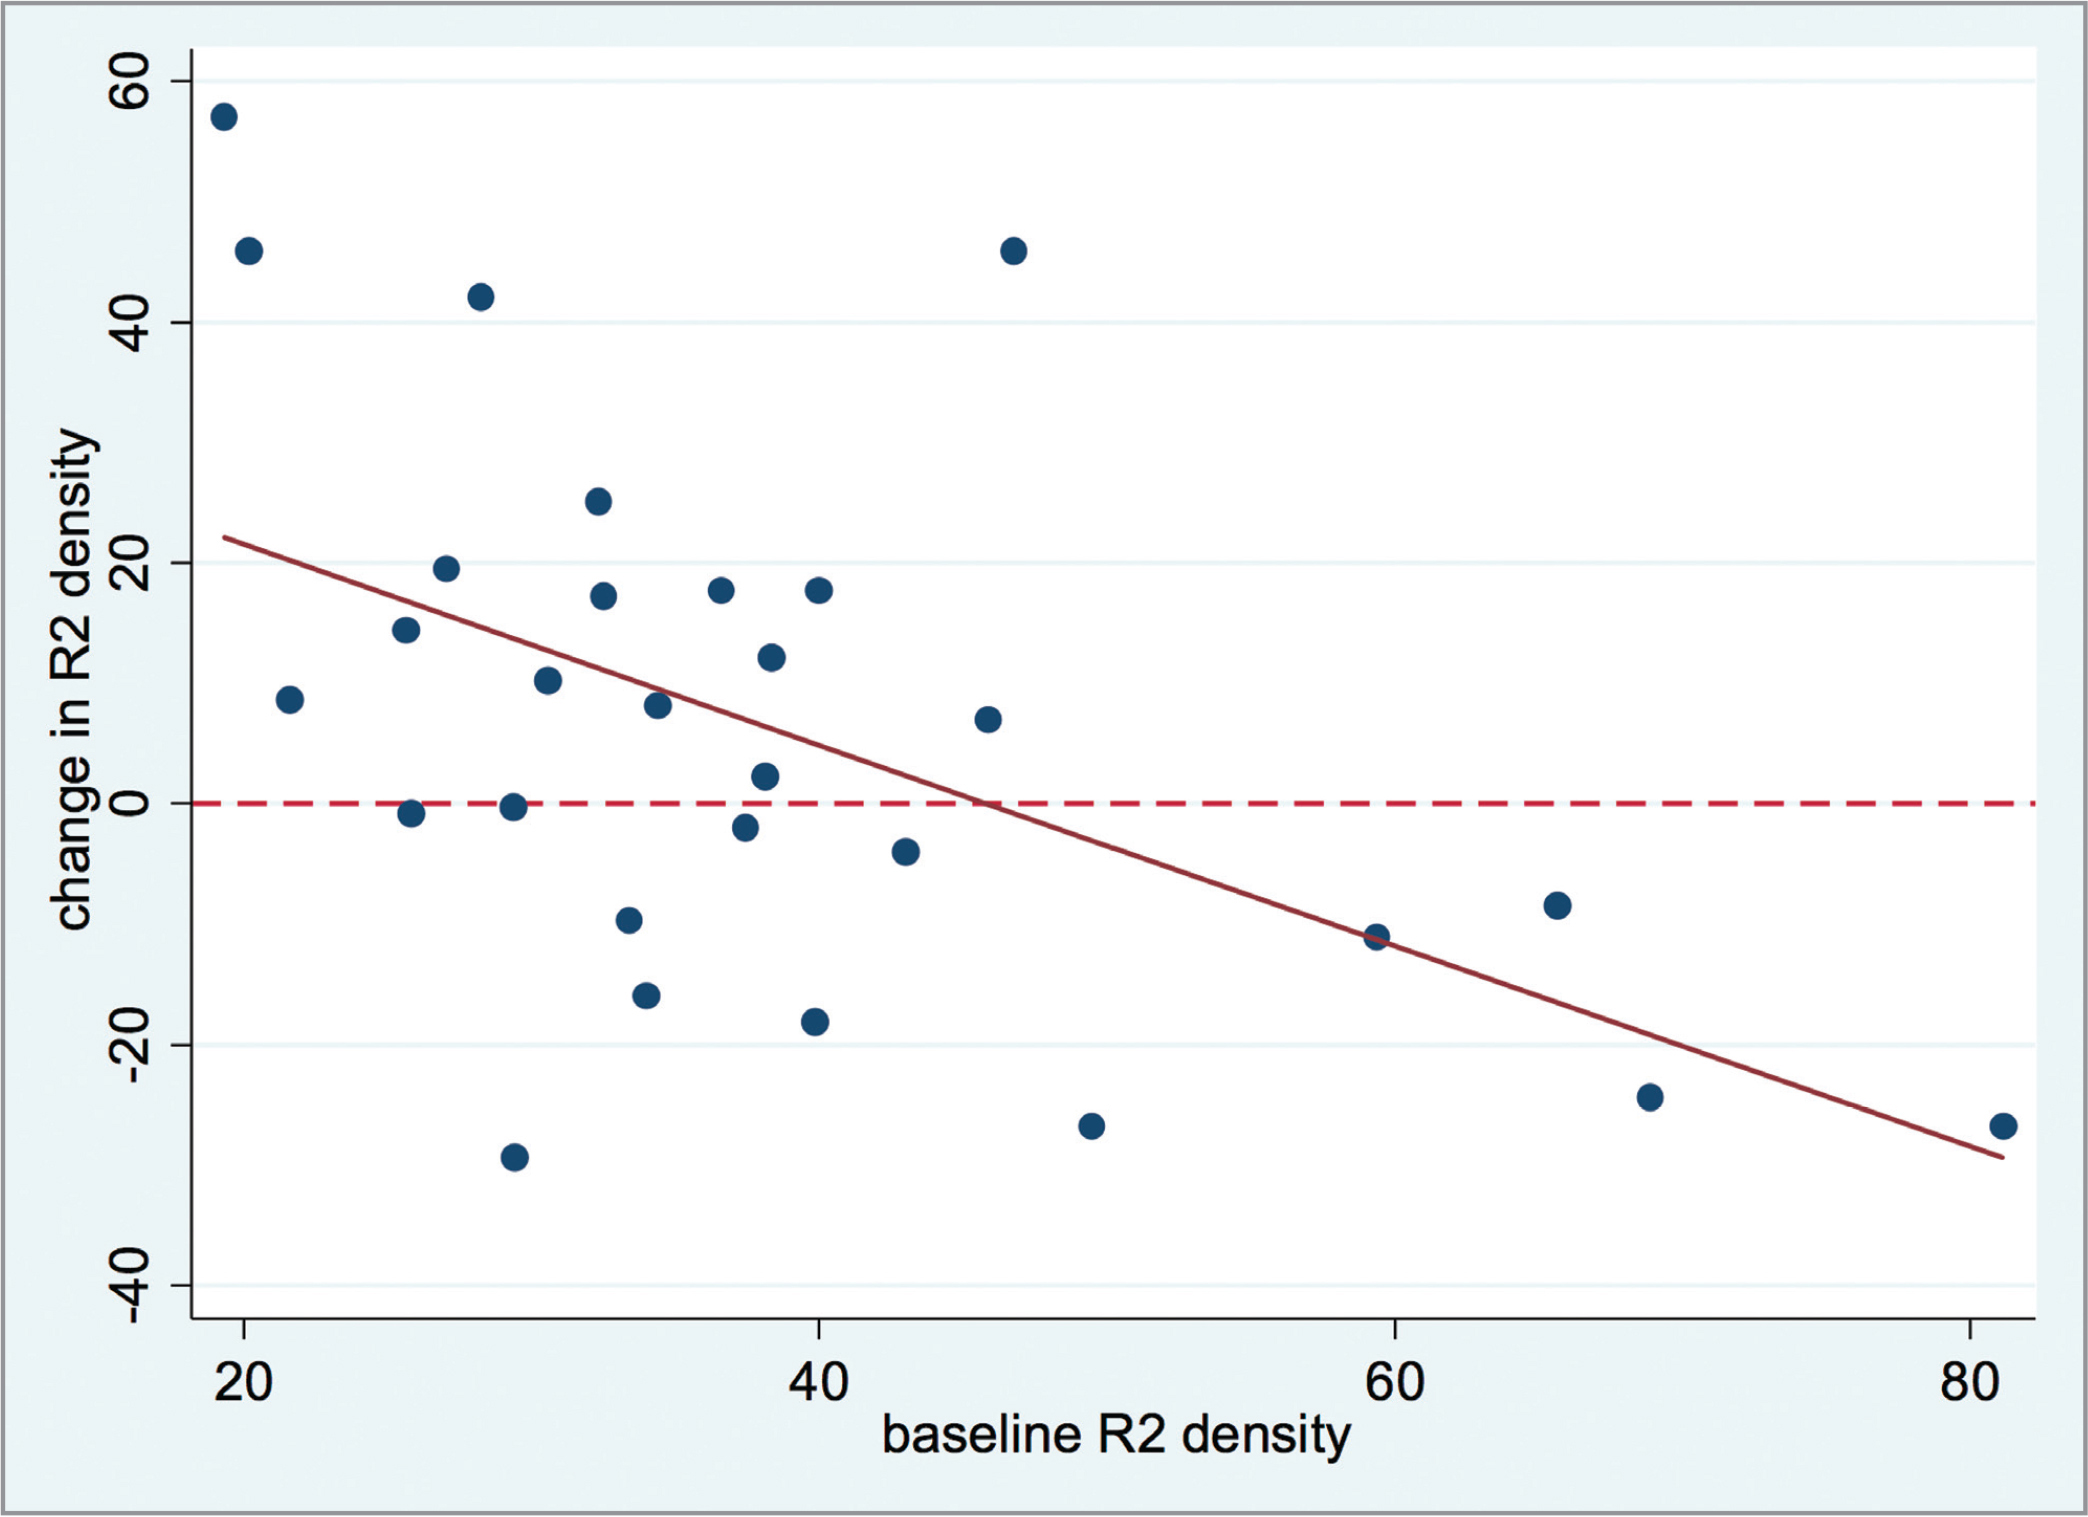 Change in multifocal electroretinography in the perifoveal area (RING 2 [R2]) density versus baseline.